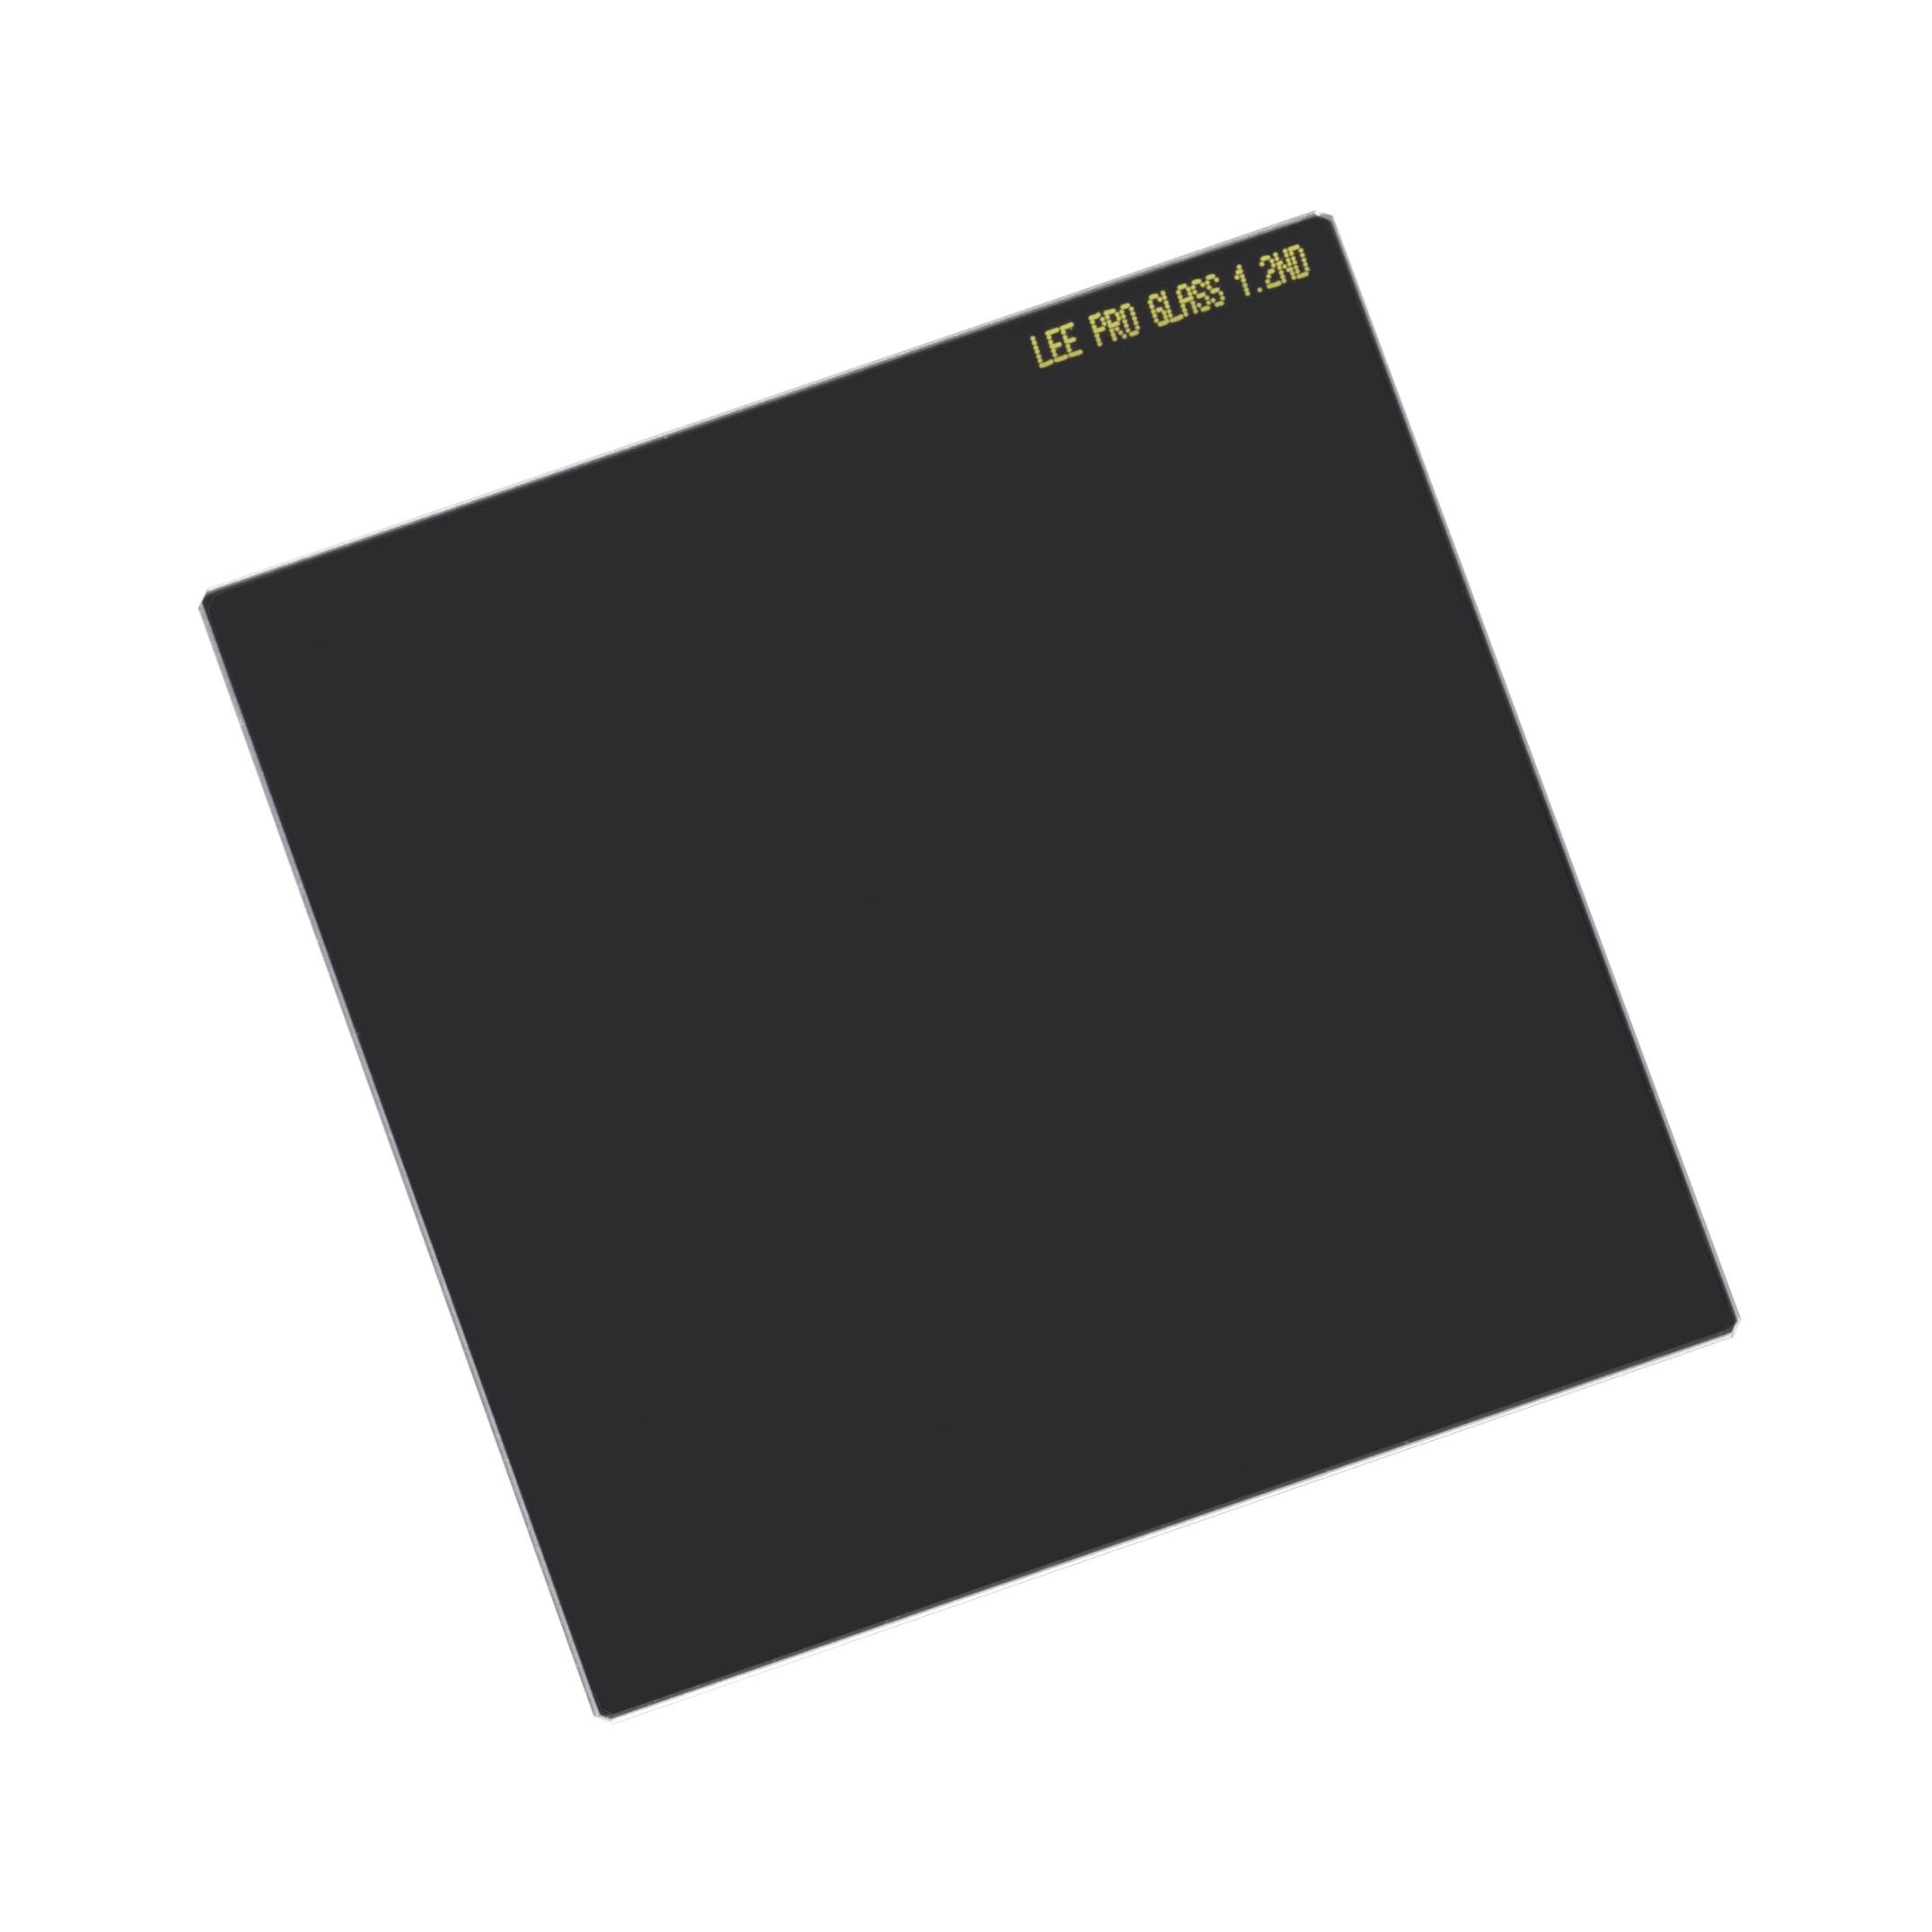 Lee 100 Solid ND ProGlass IRND Filter - 4 Stops